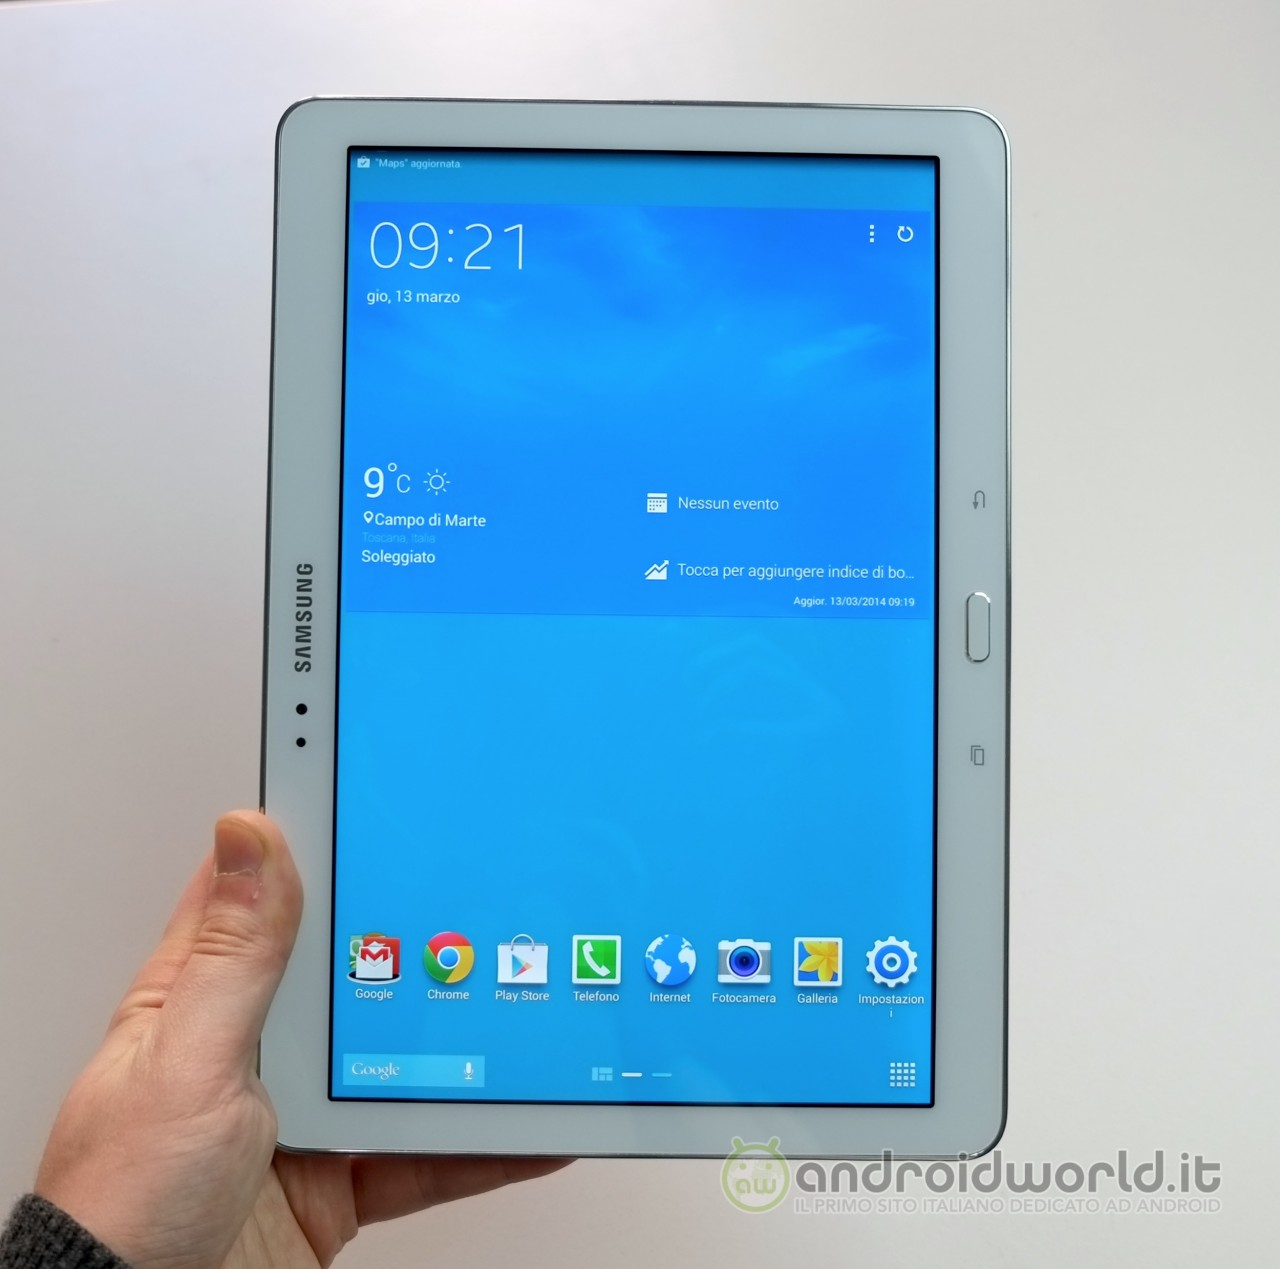 Samsung Galaxy Tab PRO 10.1, la recensione (foto e video) - AndroidWorld.it